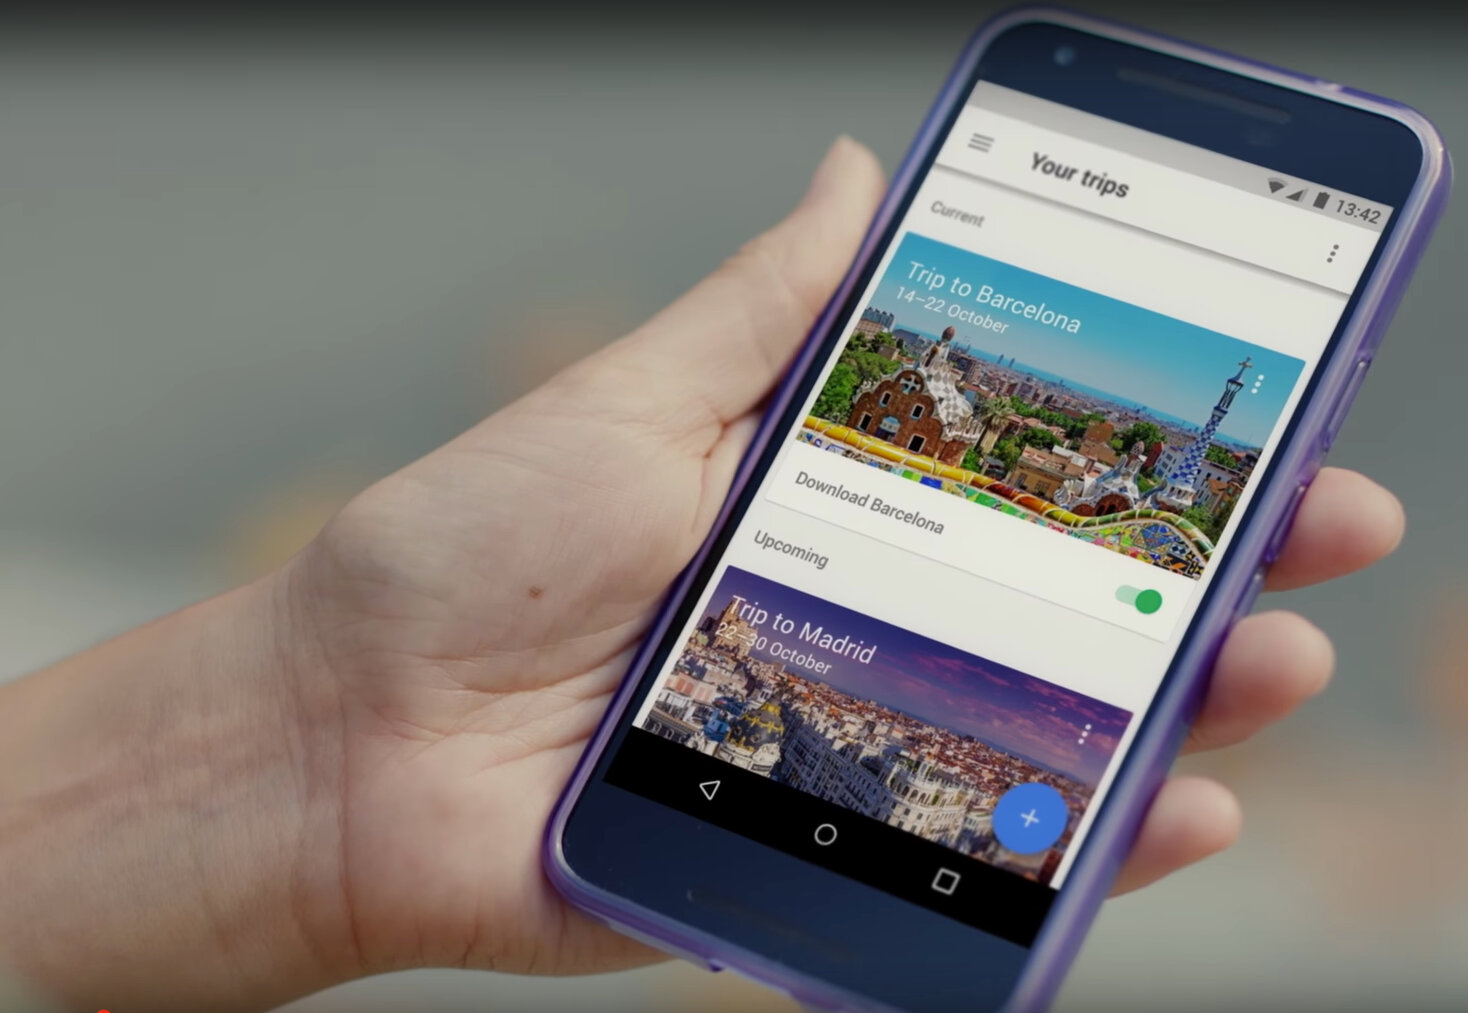 Travel feature: using technology & Google during your travels